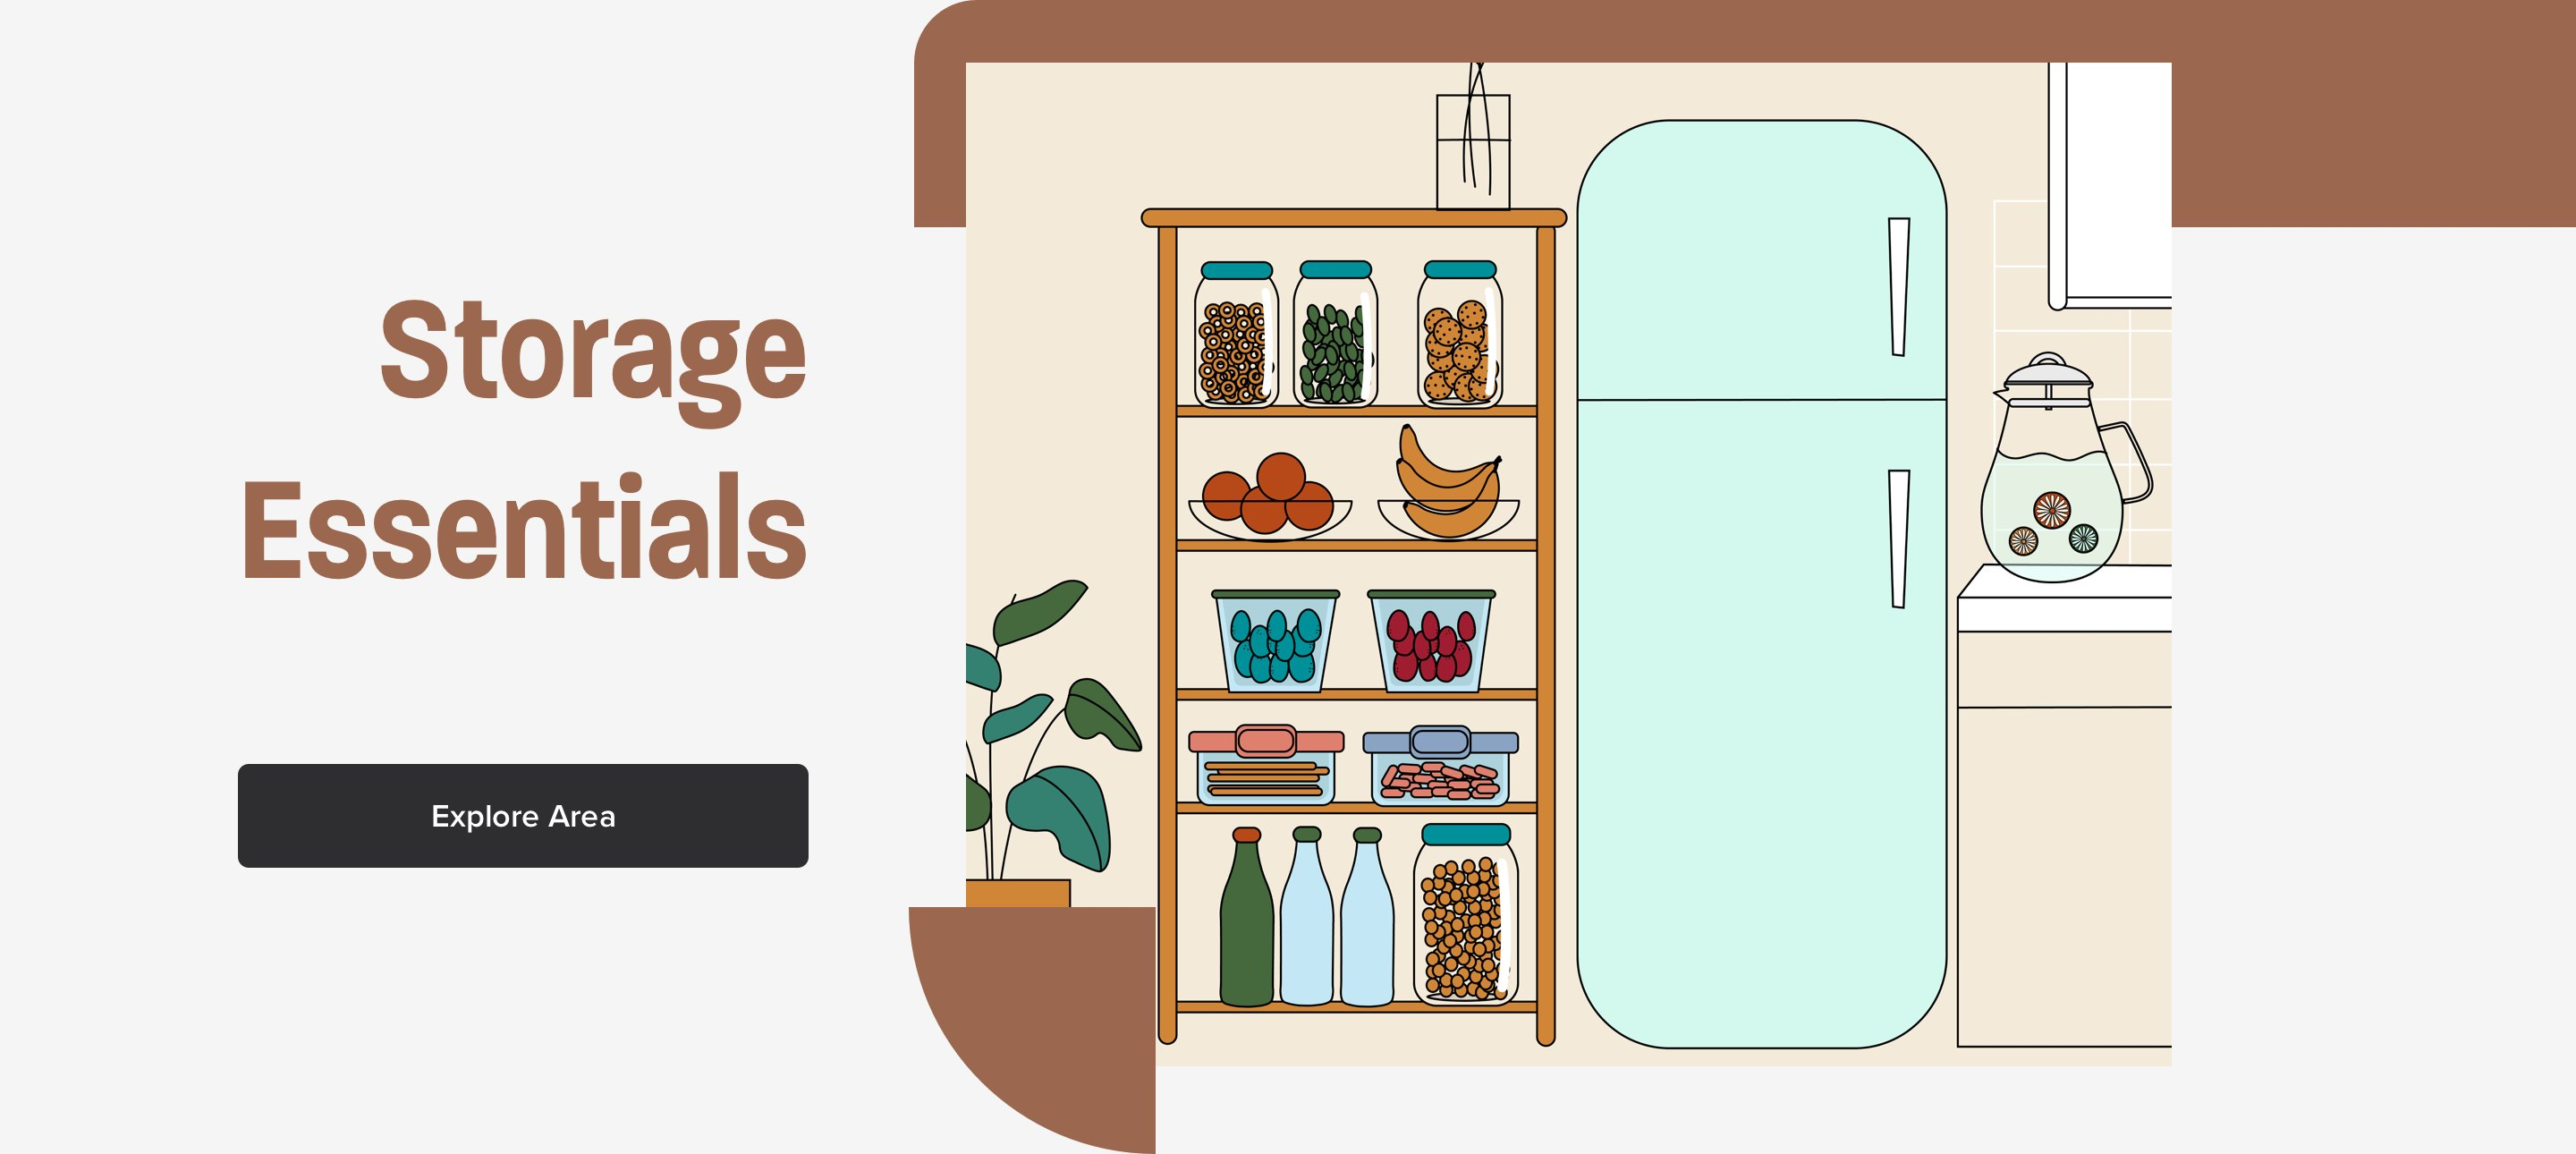 Storage Essentials section with storage containers